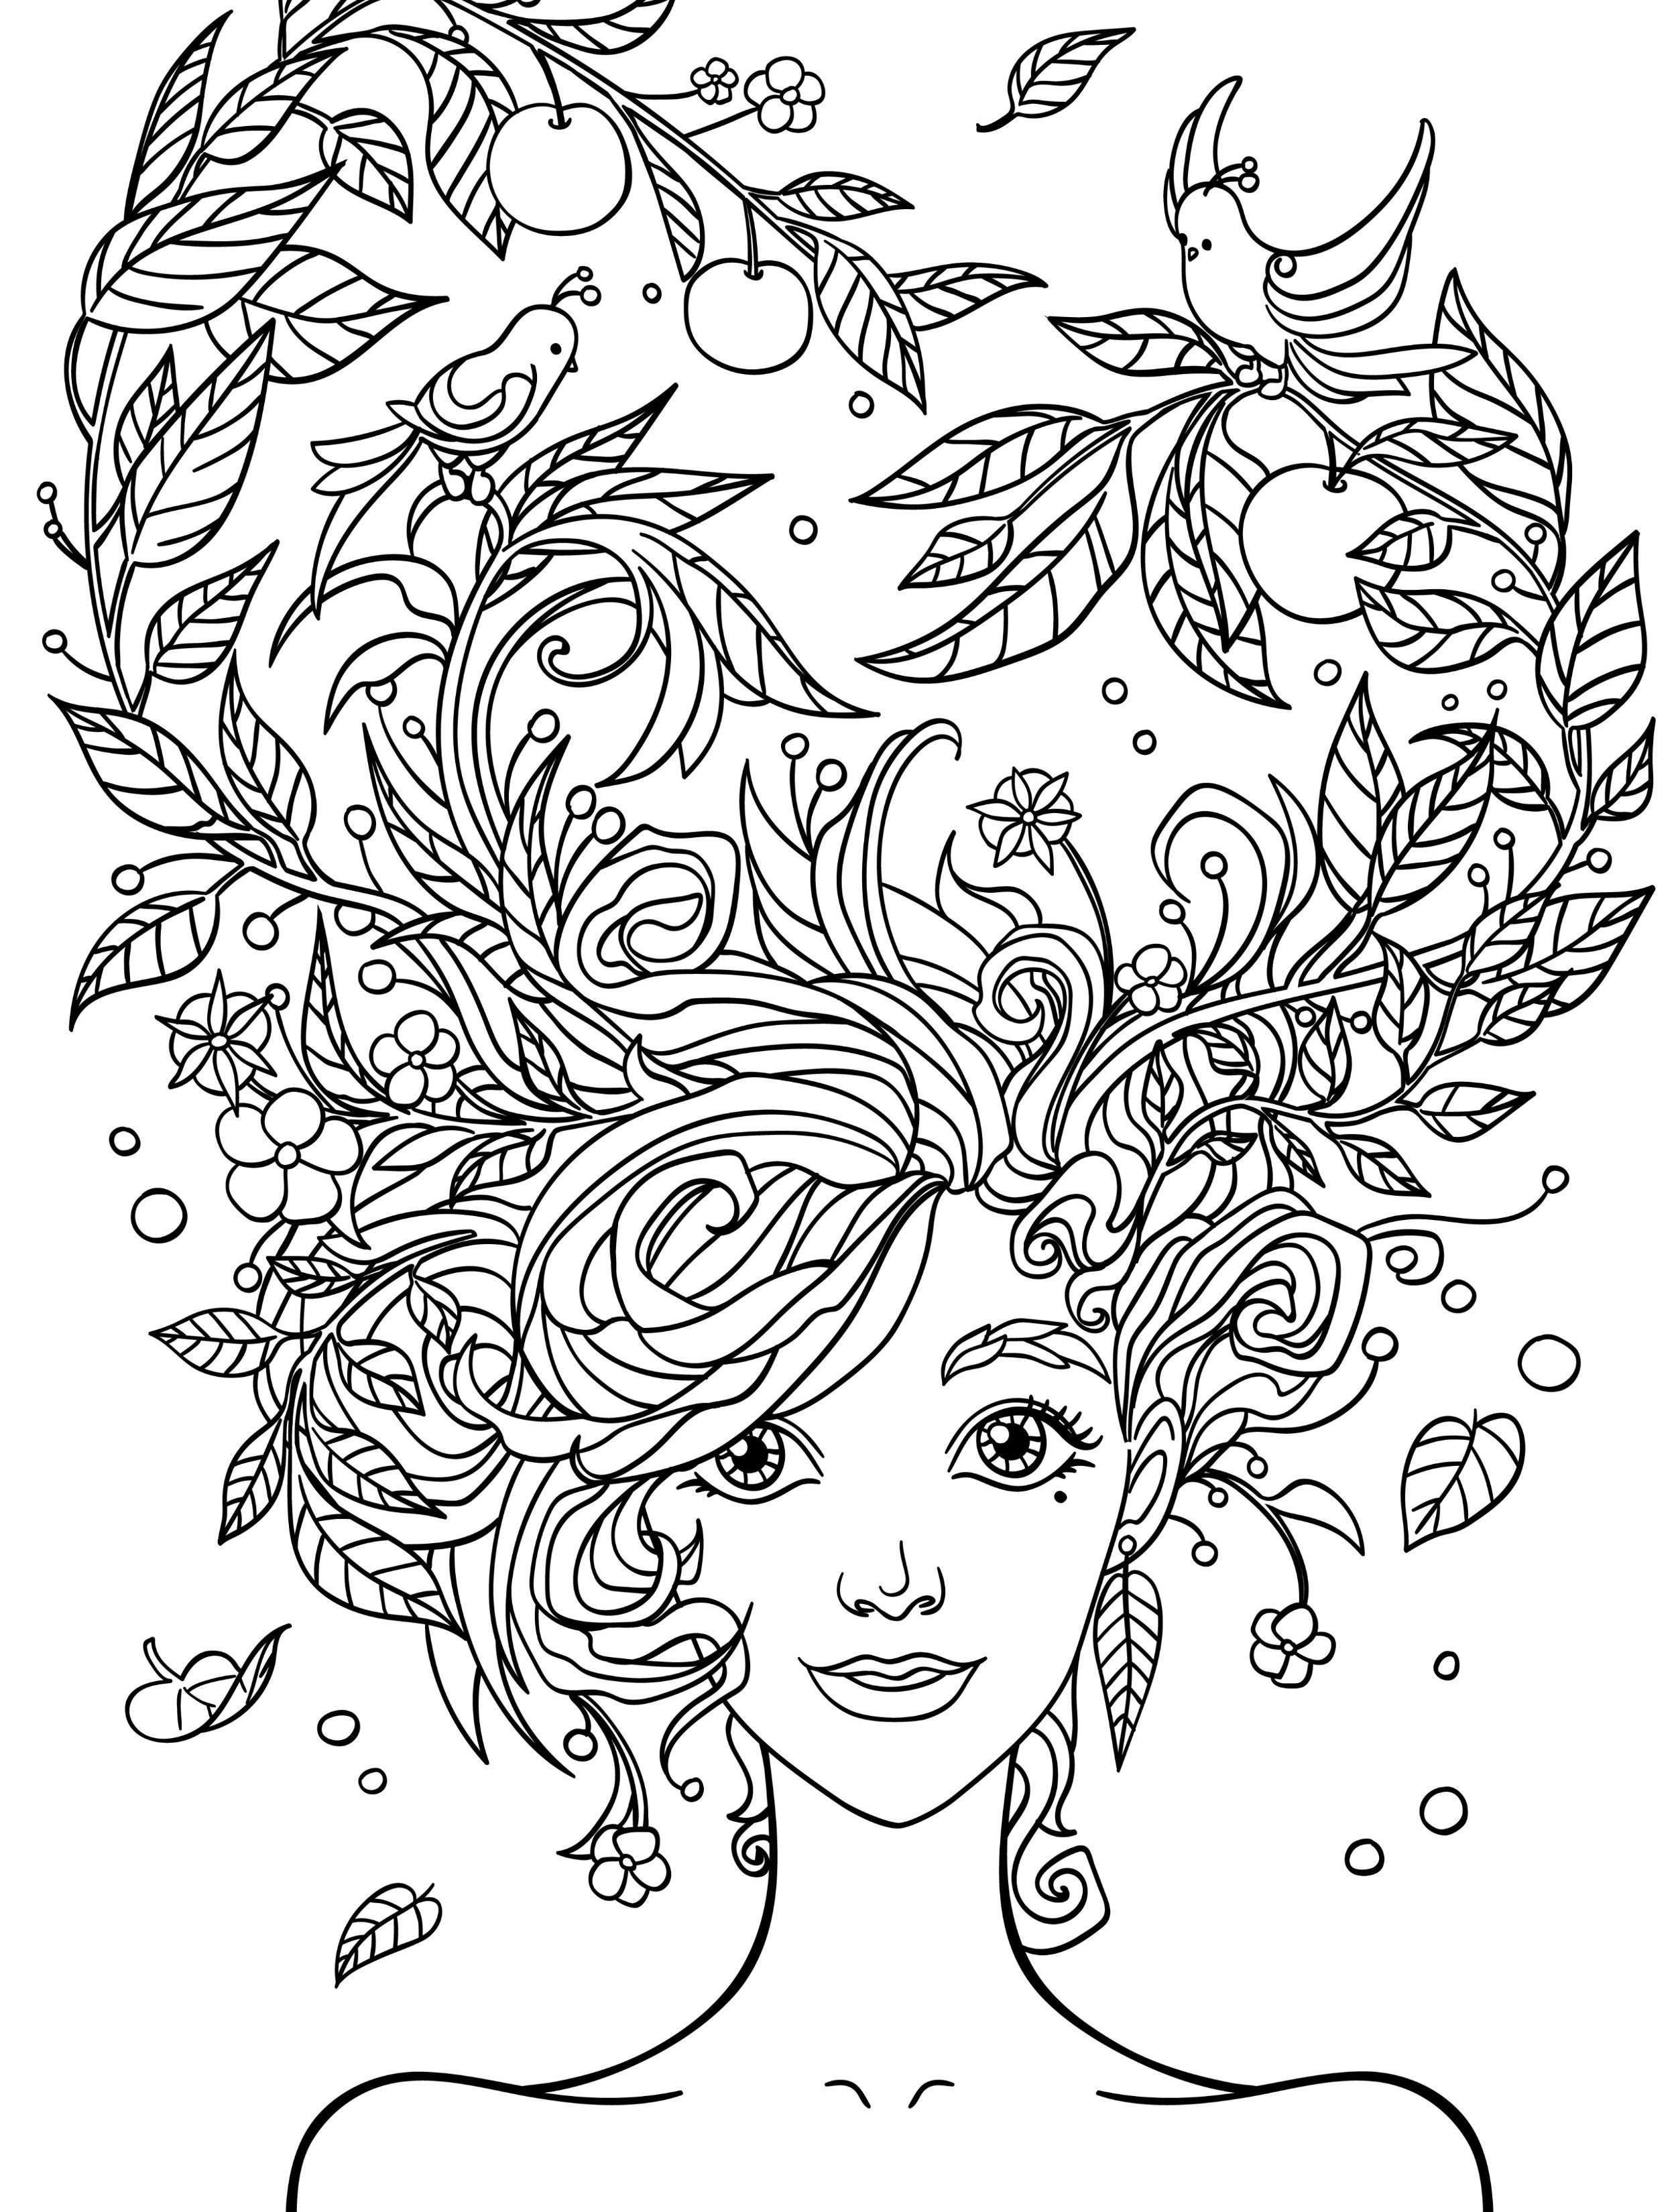 10 Crazy Hair Adult Coloring Pages | Mermaid coloring pages ...